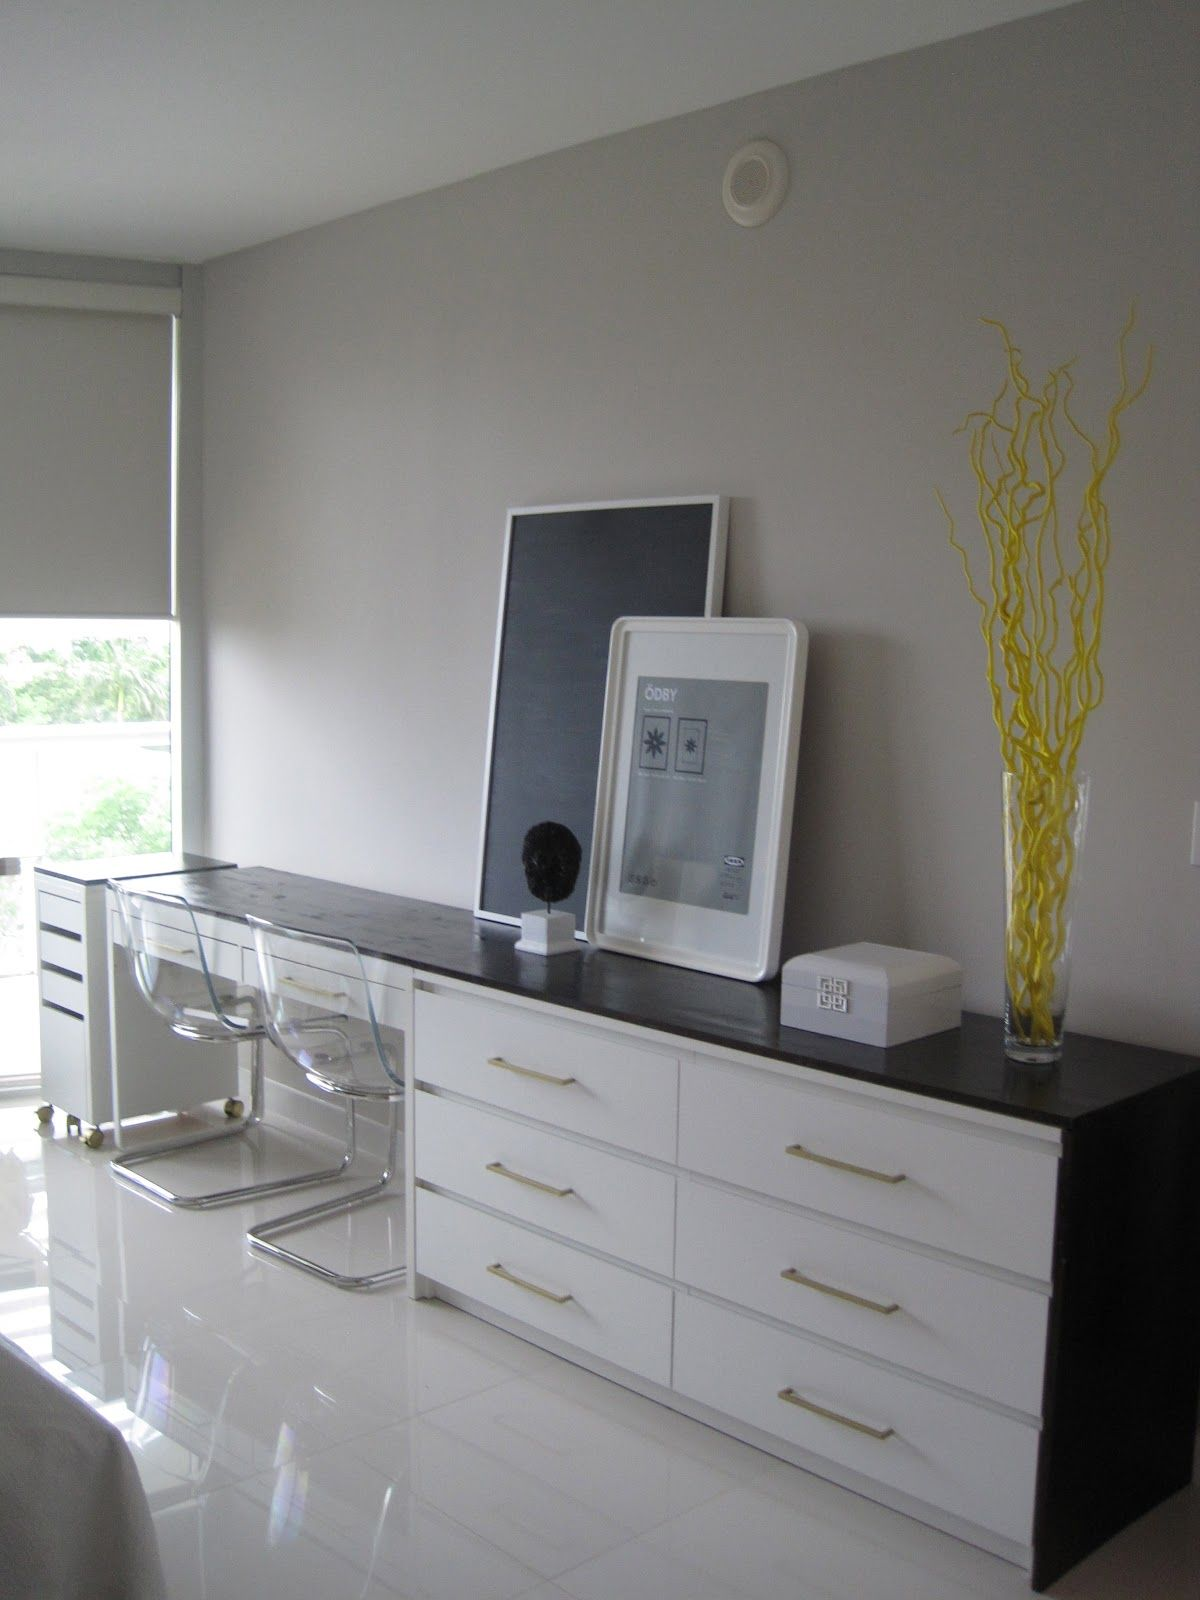 This beautiful desk is made by putting an Ikea Malm 6